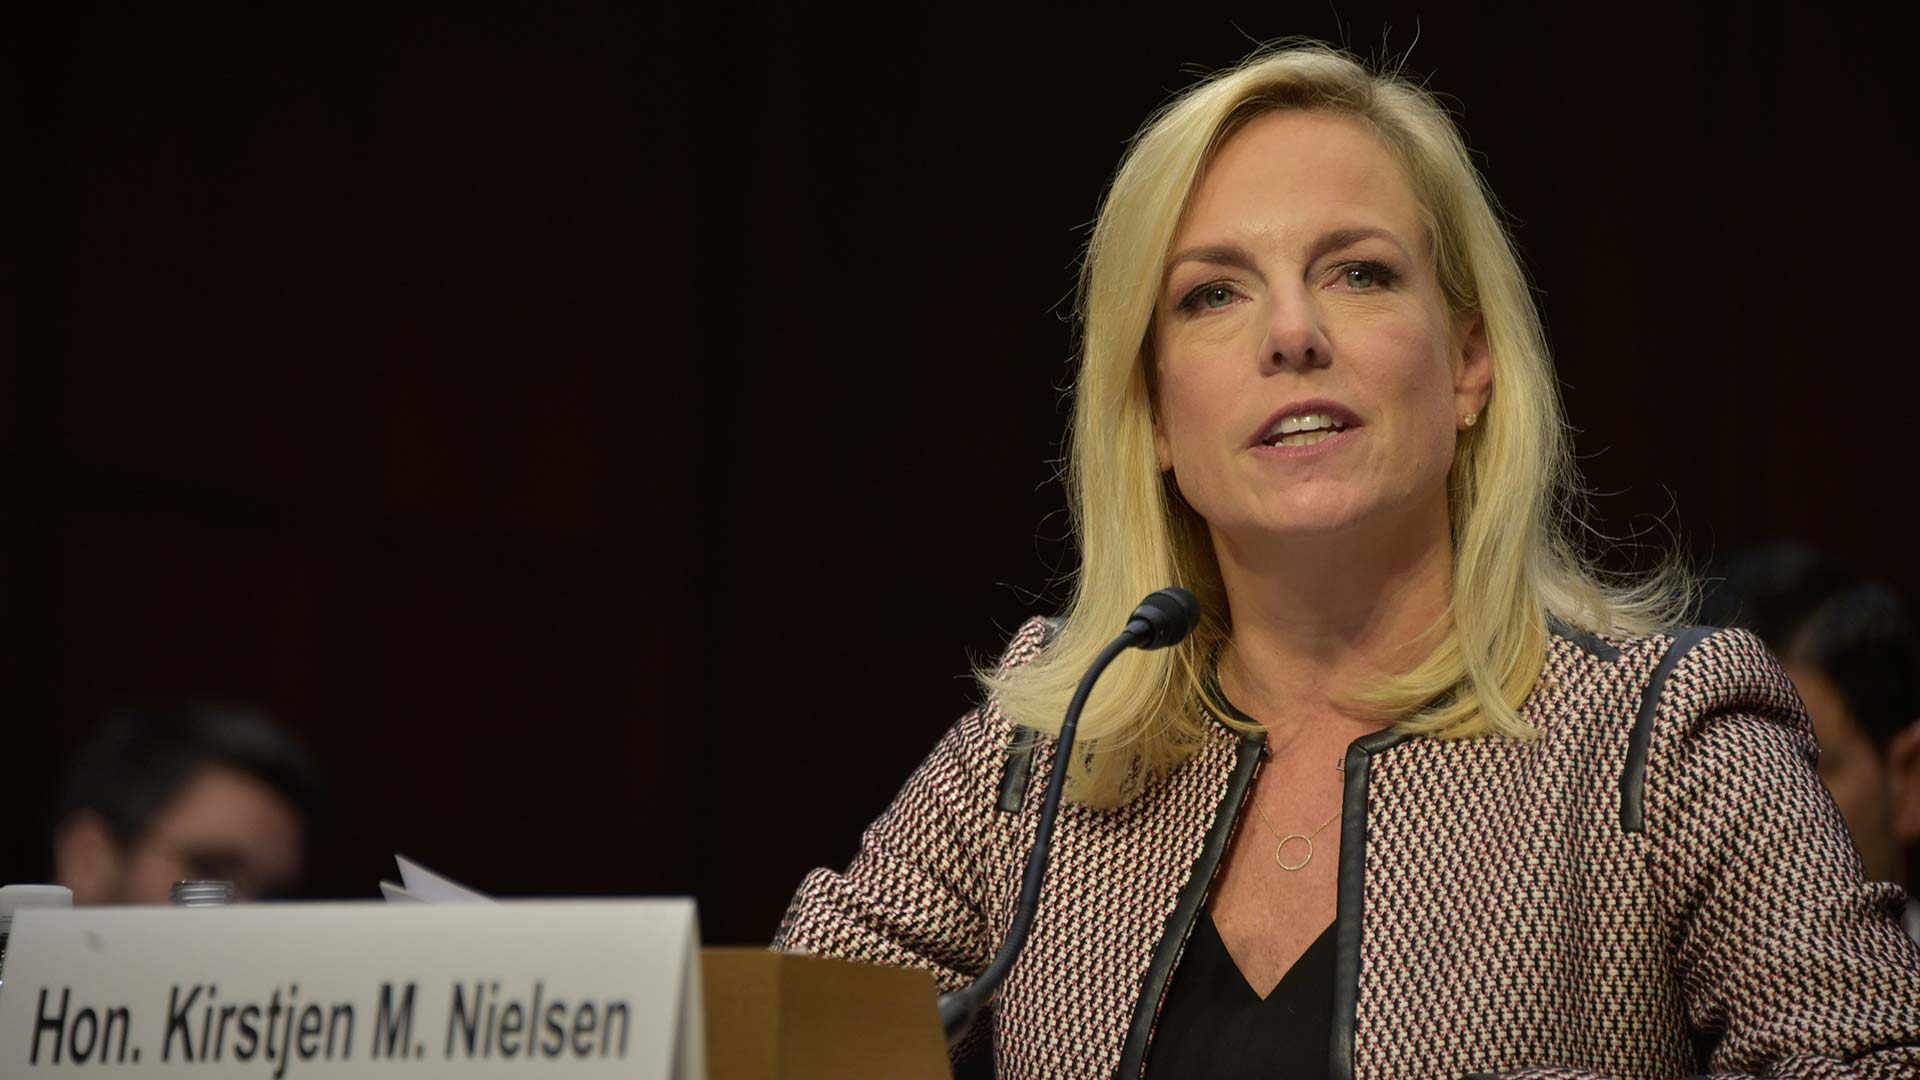 Secretary Kirstjen M. Nielsen testifying before the Senate Judiciary Committee, Jan. 16, 2018.